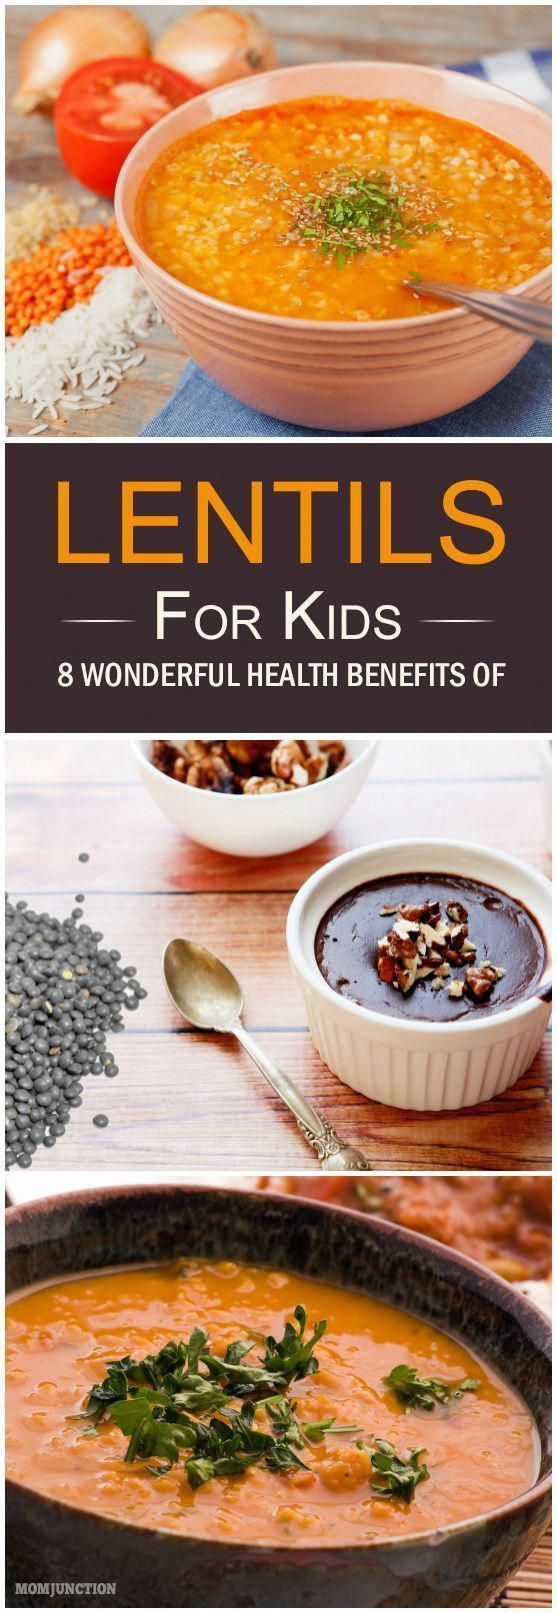 Do you spend hours consulting books and web pages to advance your knowledge about child nutrition? We list out 3 wonderful lentil recipes for kids that you should try out. #easycookingrecipesforkids #childnutrition Do you spend hours consulting books and web pages to advance your knowledge about child nutrition? We list out 3 wonderful lentil recipes for kids that you should try out. #easycookingrecipesforkids #childnutrition Do you spend hours consulting books and web pages to advance your know #childnutrition